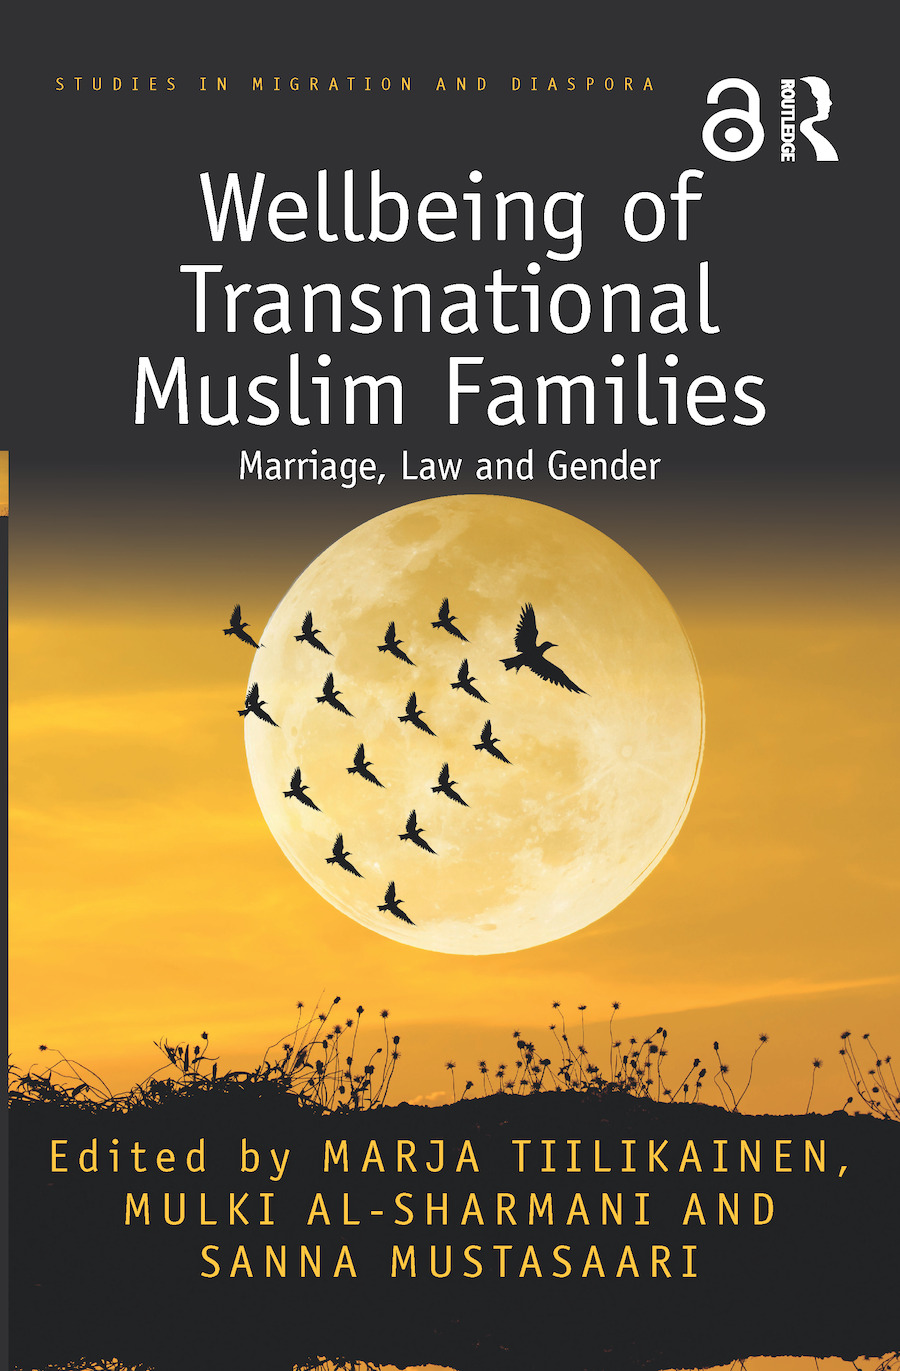 Wellbeing of Transnational Muslim Families: Marriage, Law and Gender book cover